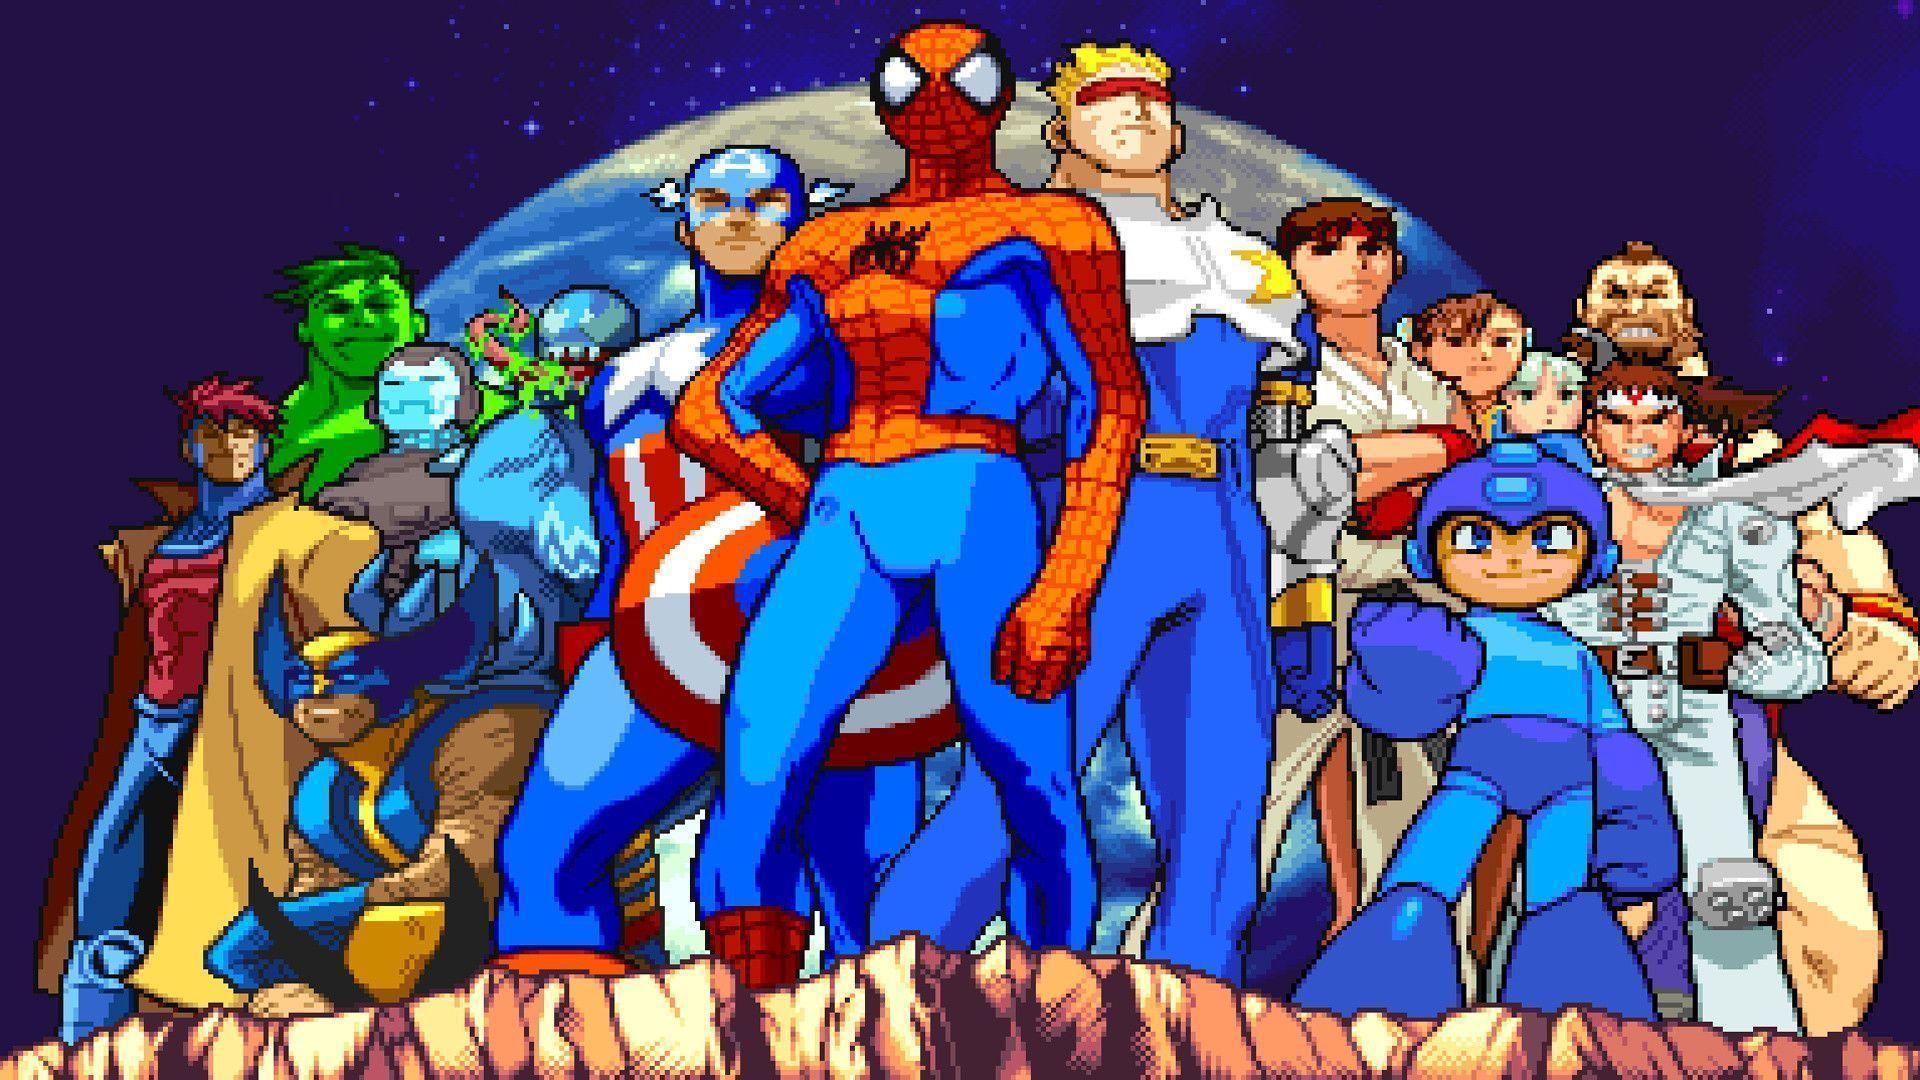 Marvel Vs. Capcom on the AudioShocker Podcast Network